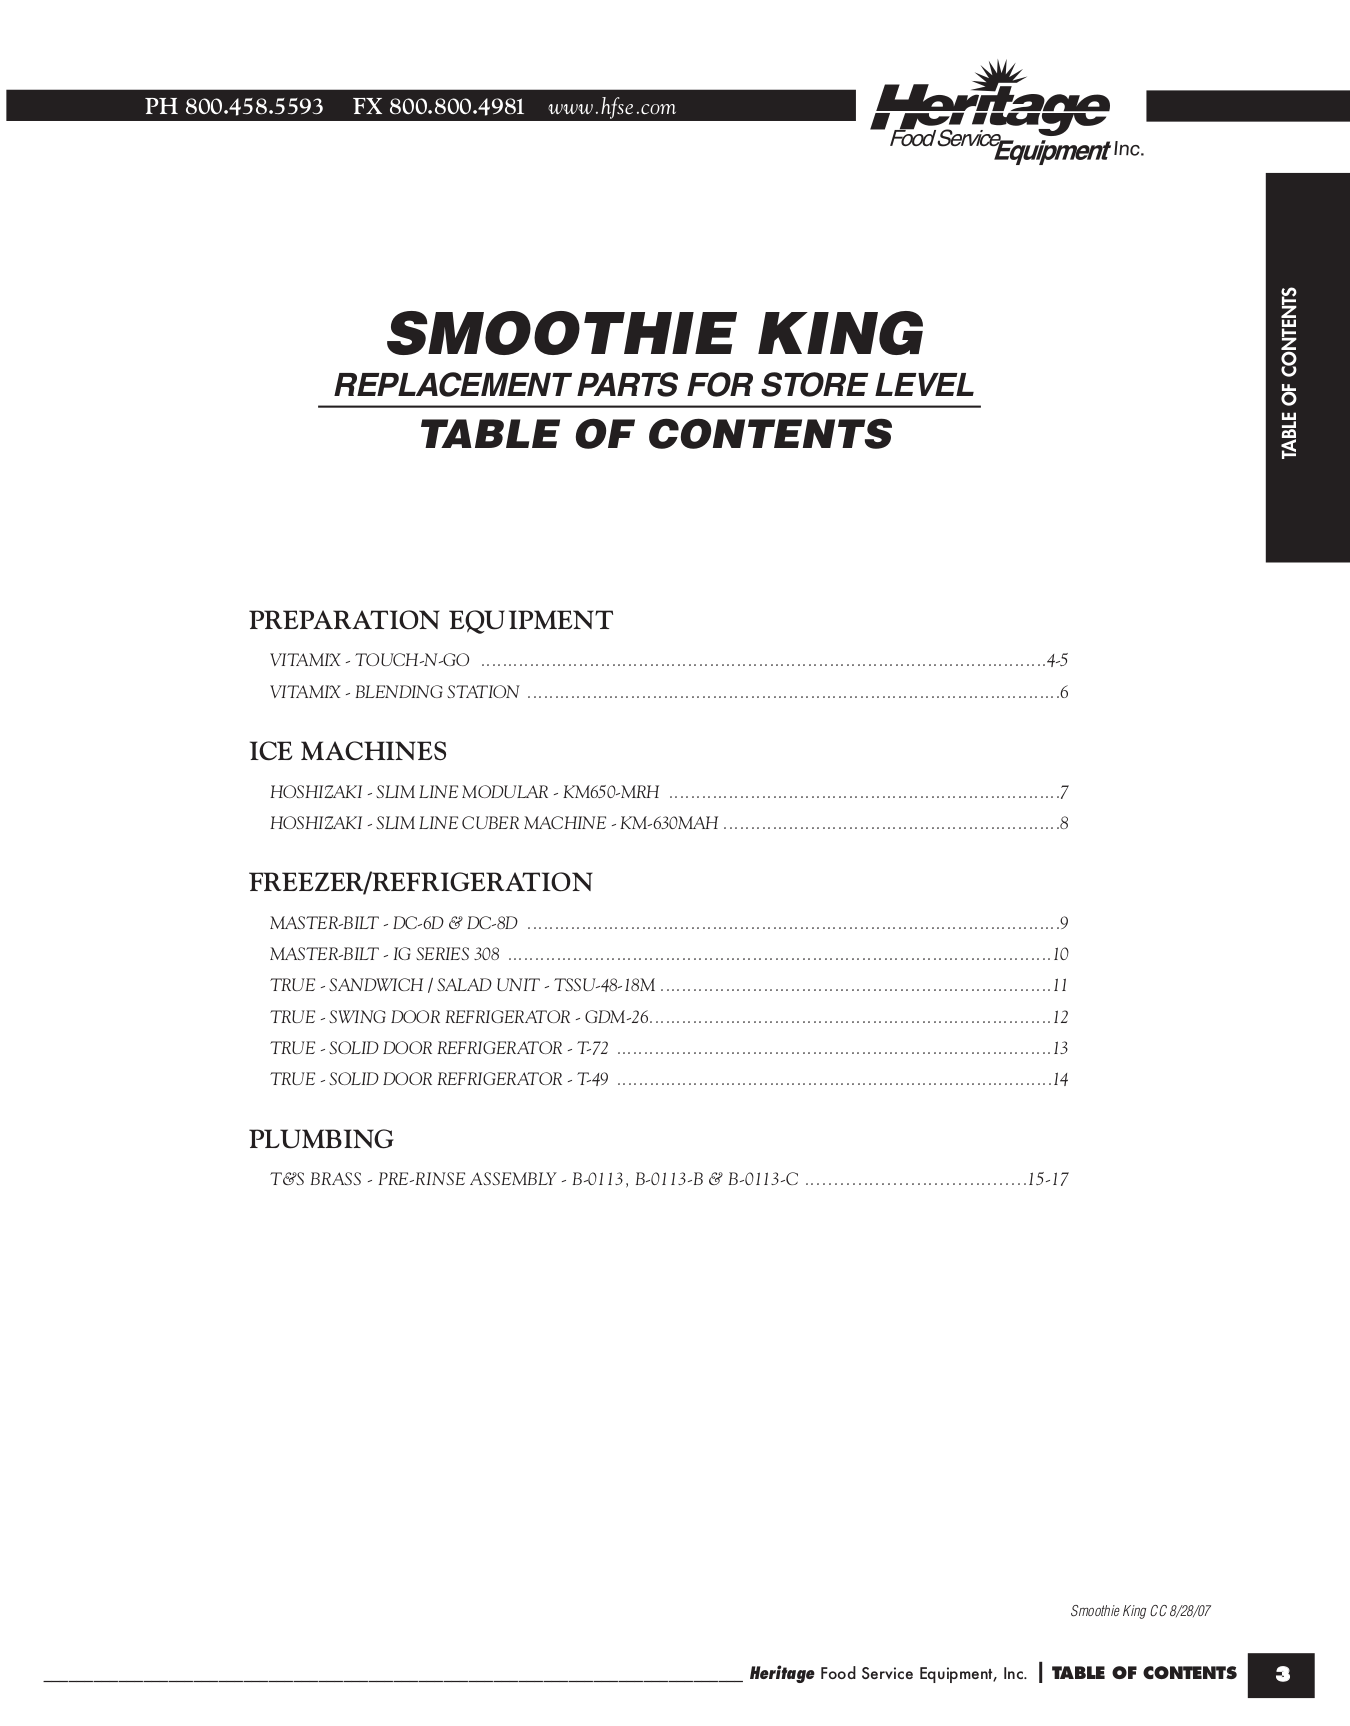 Smoothie King SPCE.pdf 0 download free pdf for true t 72f freezer manual  at suagrazia.org